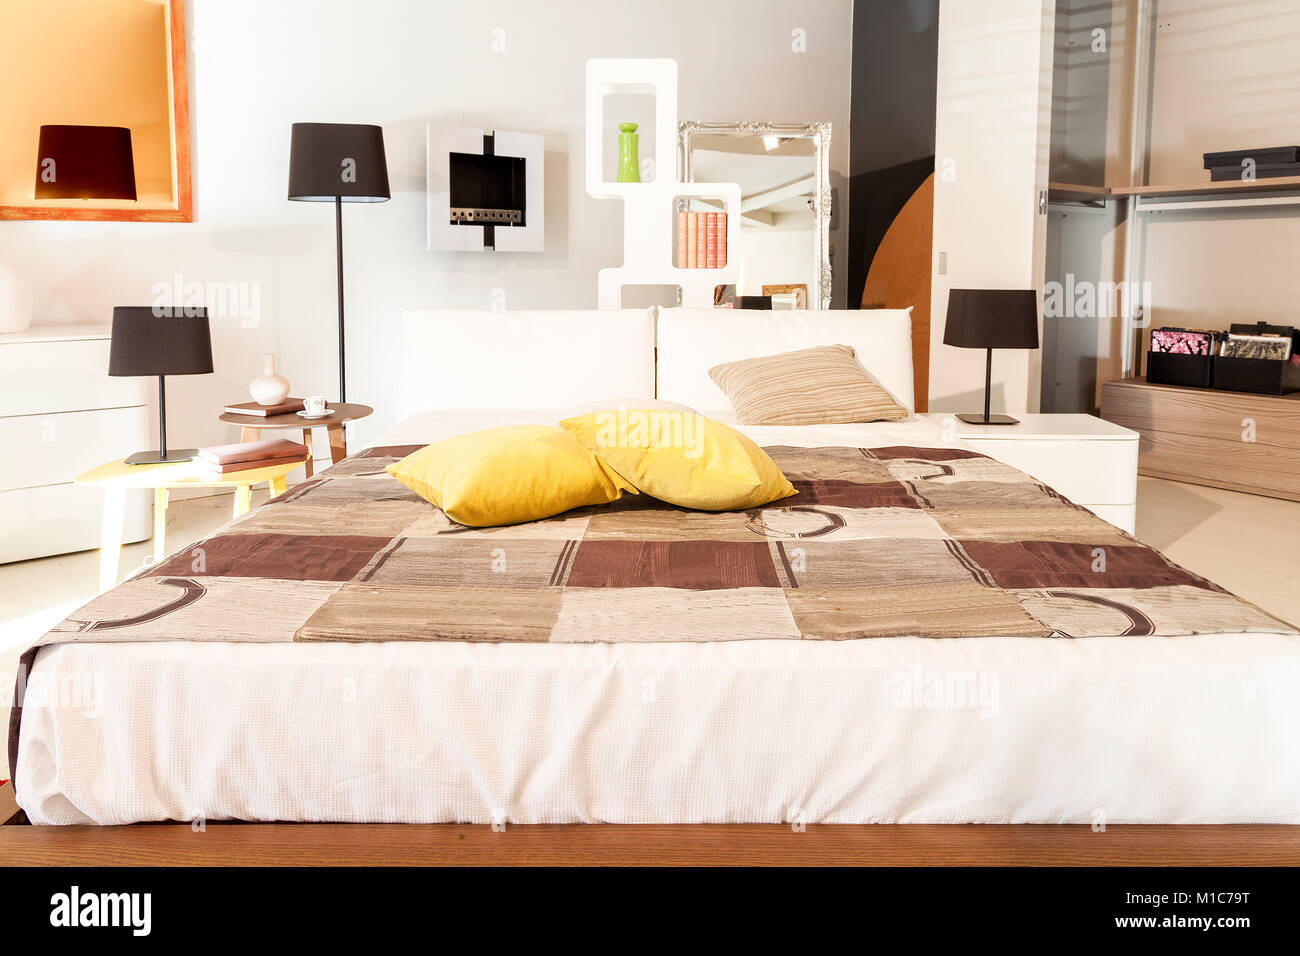 home interior modern beautiful apartment in new luxury location Stock Photo